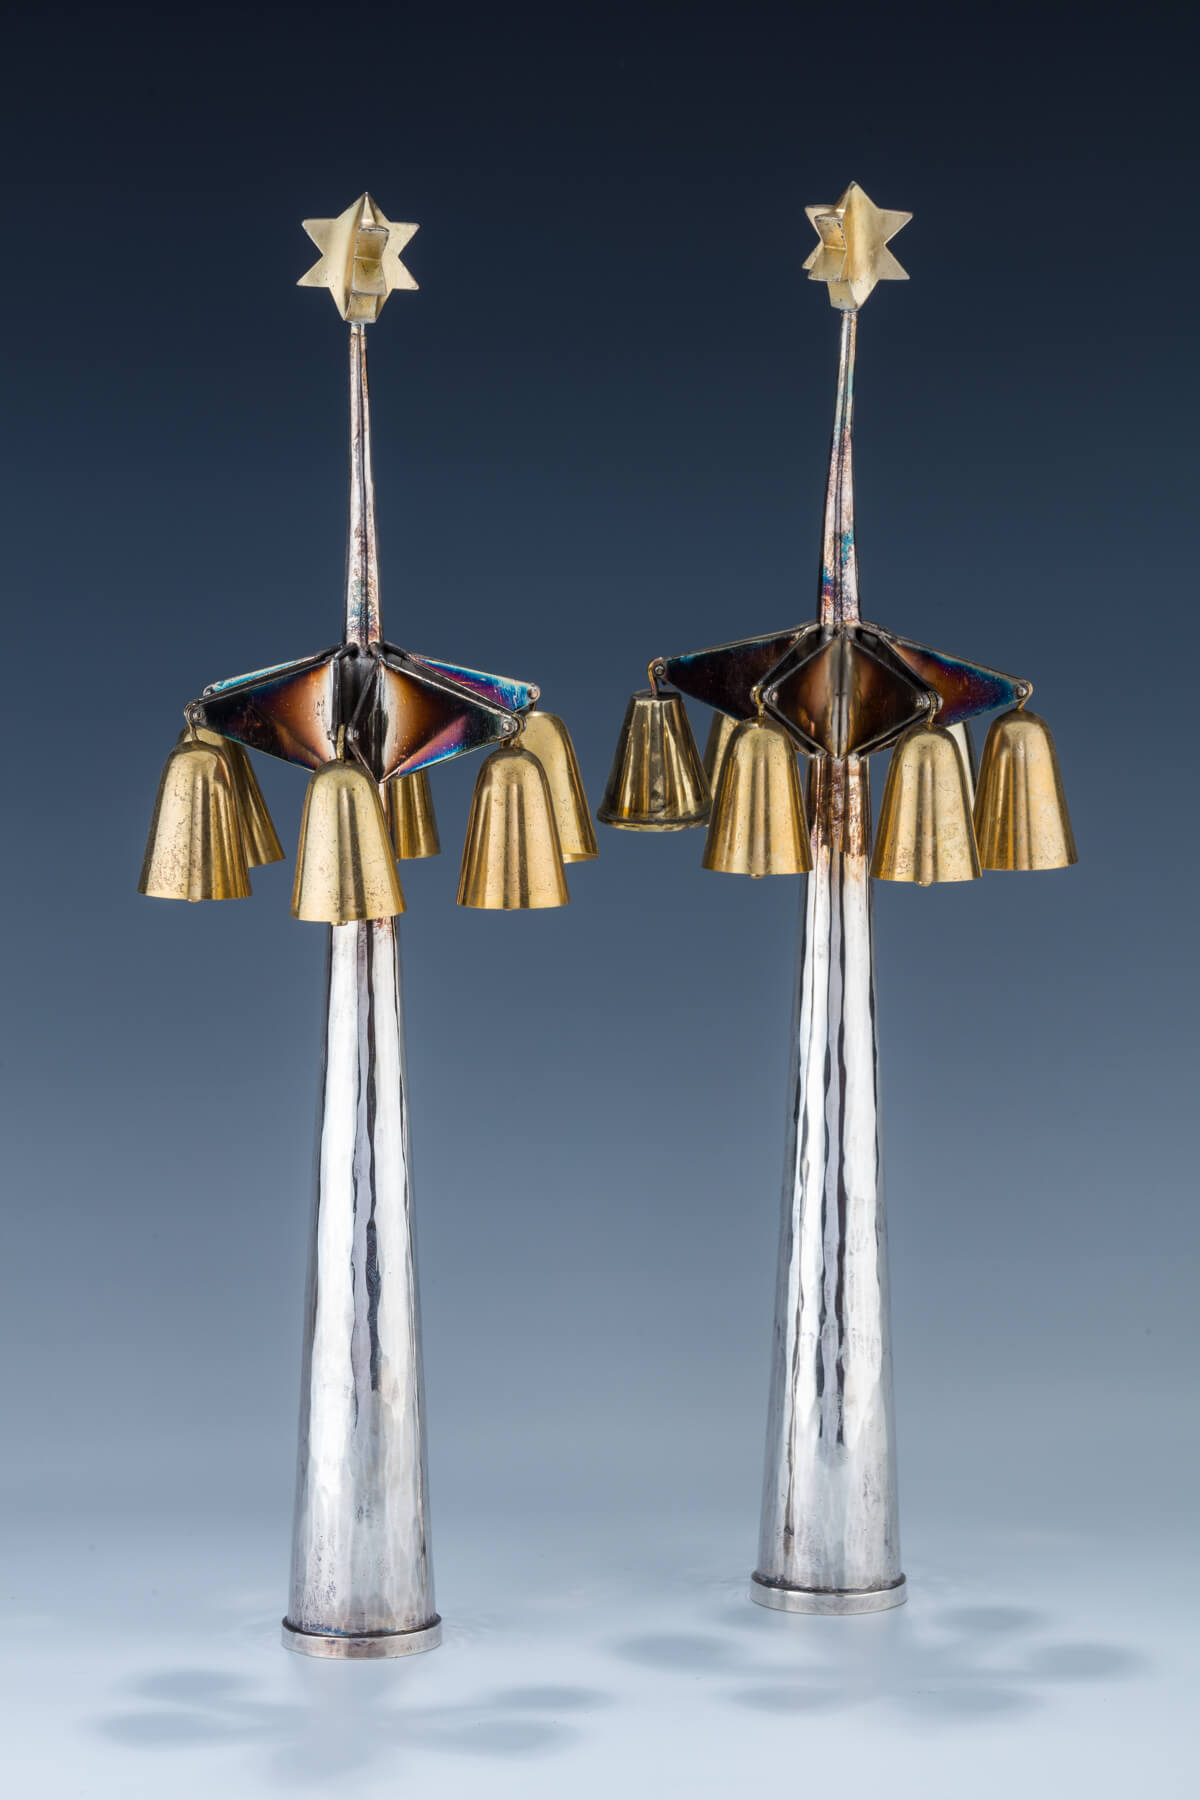 33. A Pair Of Silver Torah Finials